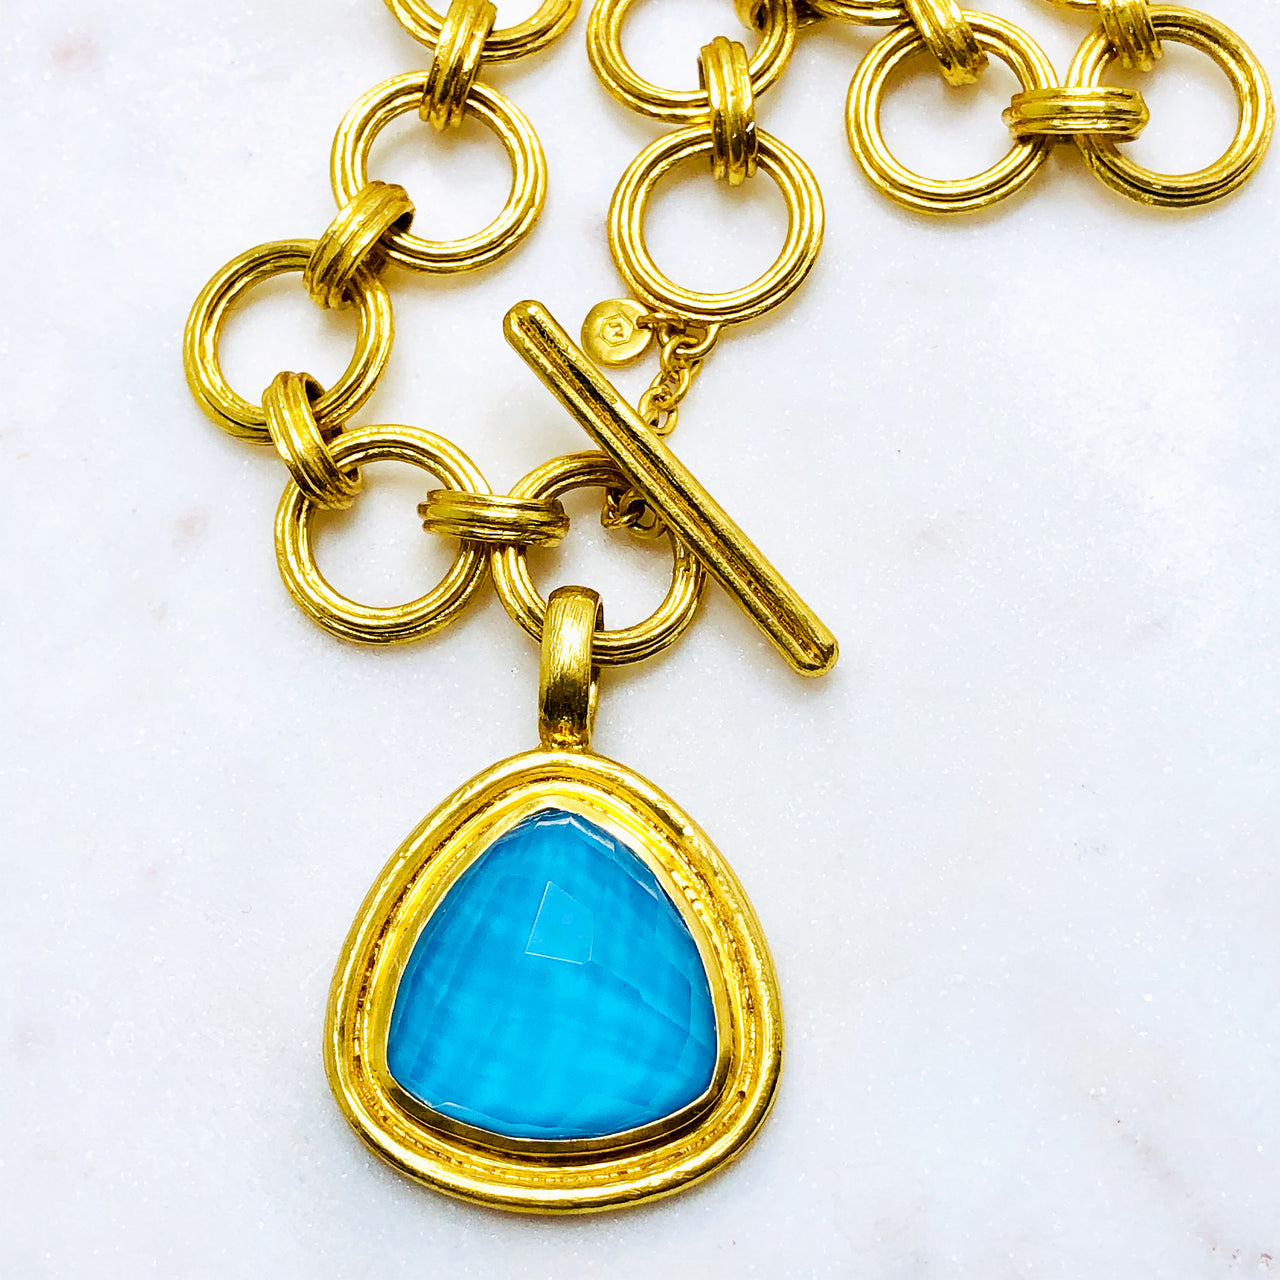 Gold Plated Turquoise and Quartz Necklace.